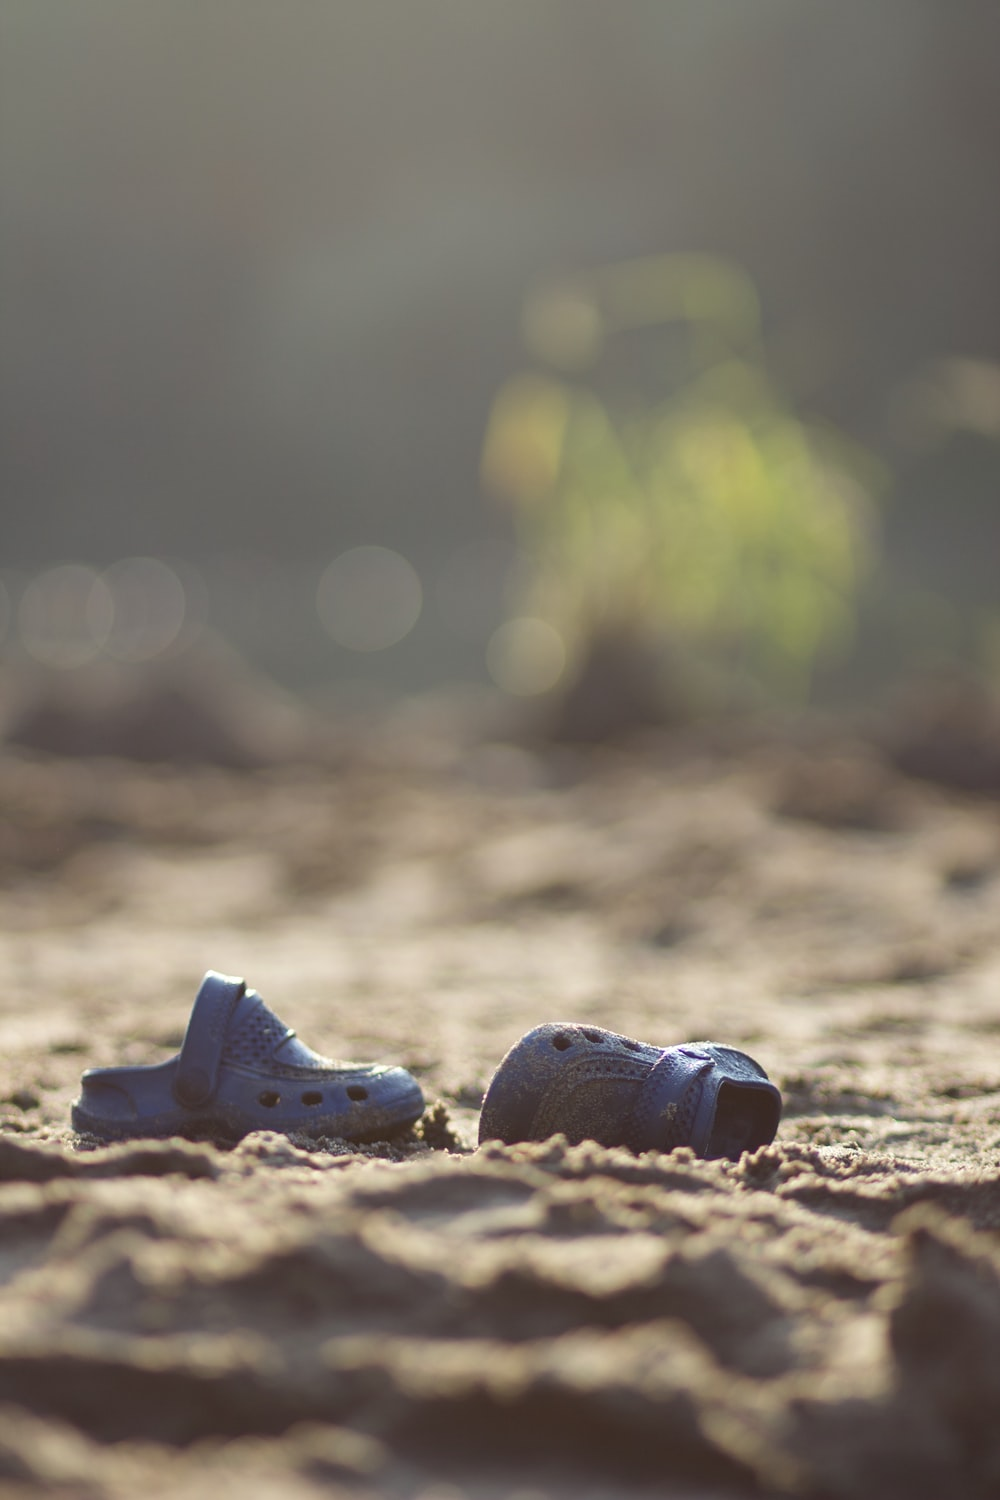 focus photo of pair of boy's black rubber clogs on brown soil at daytime